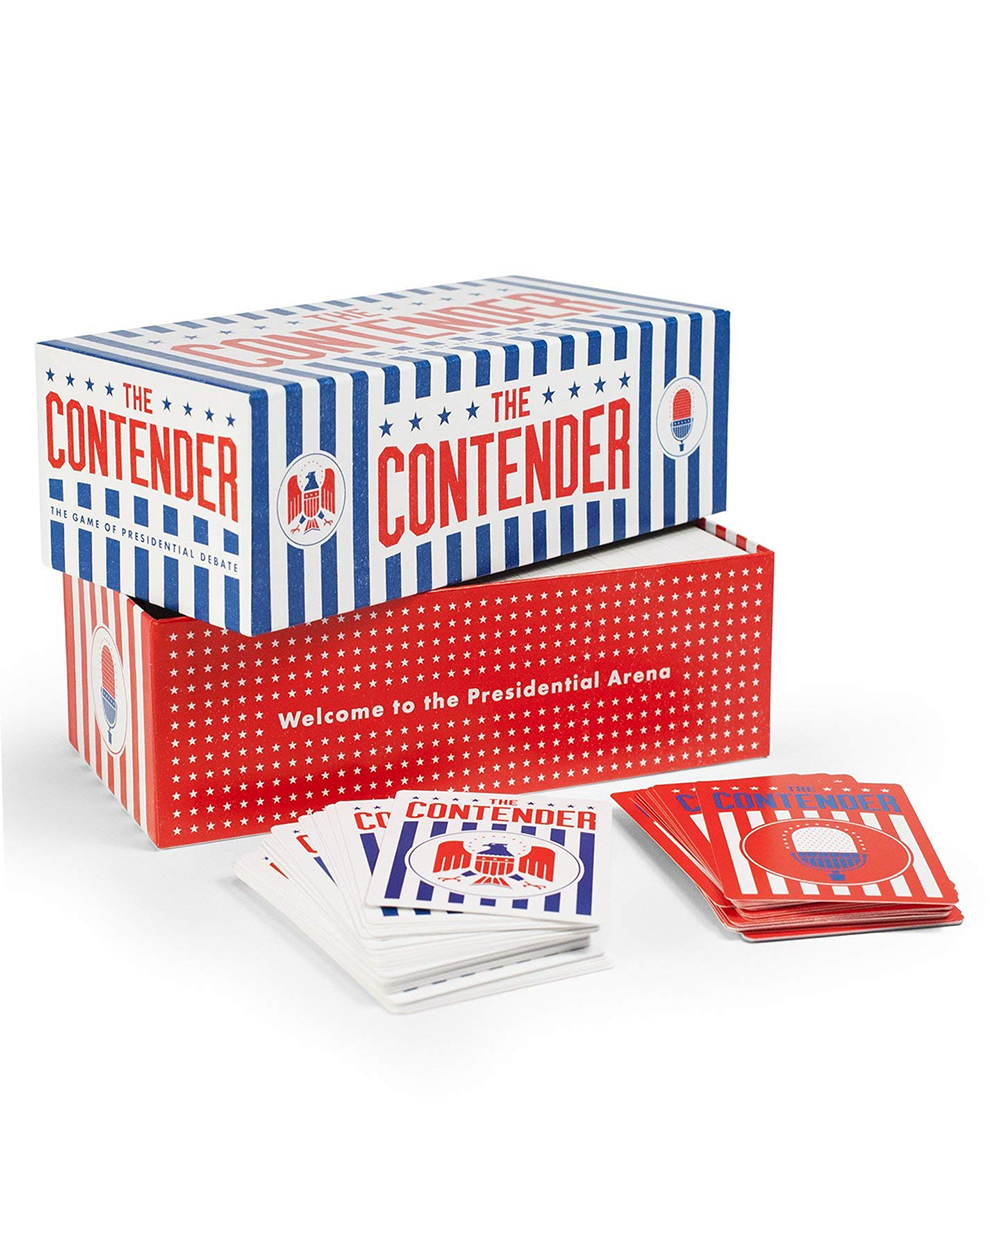 The Contender Game of Presidential Debate gifts for boyfriend